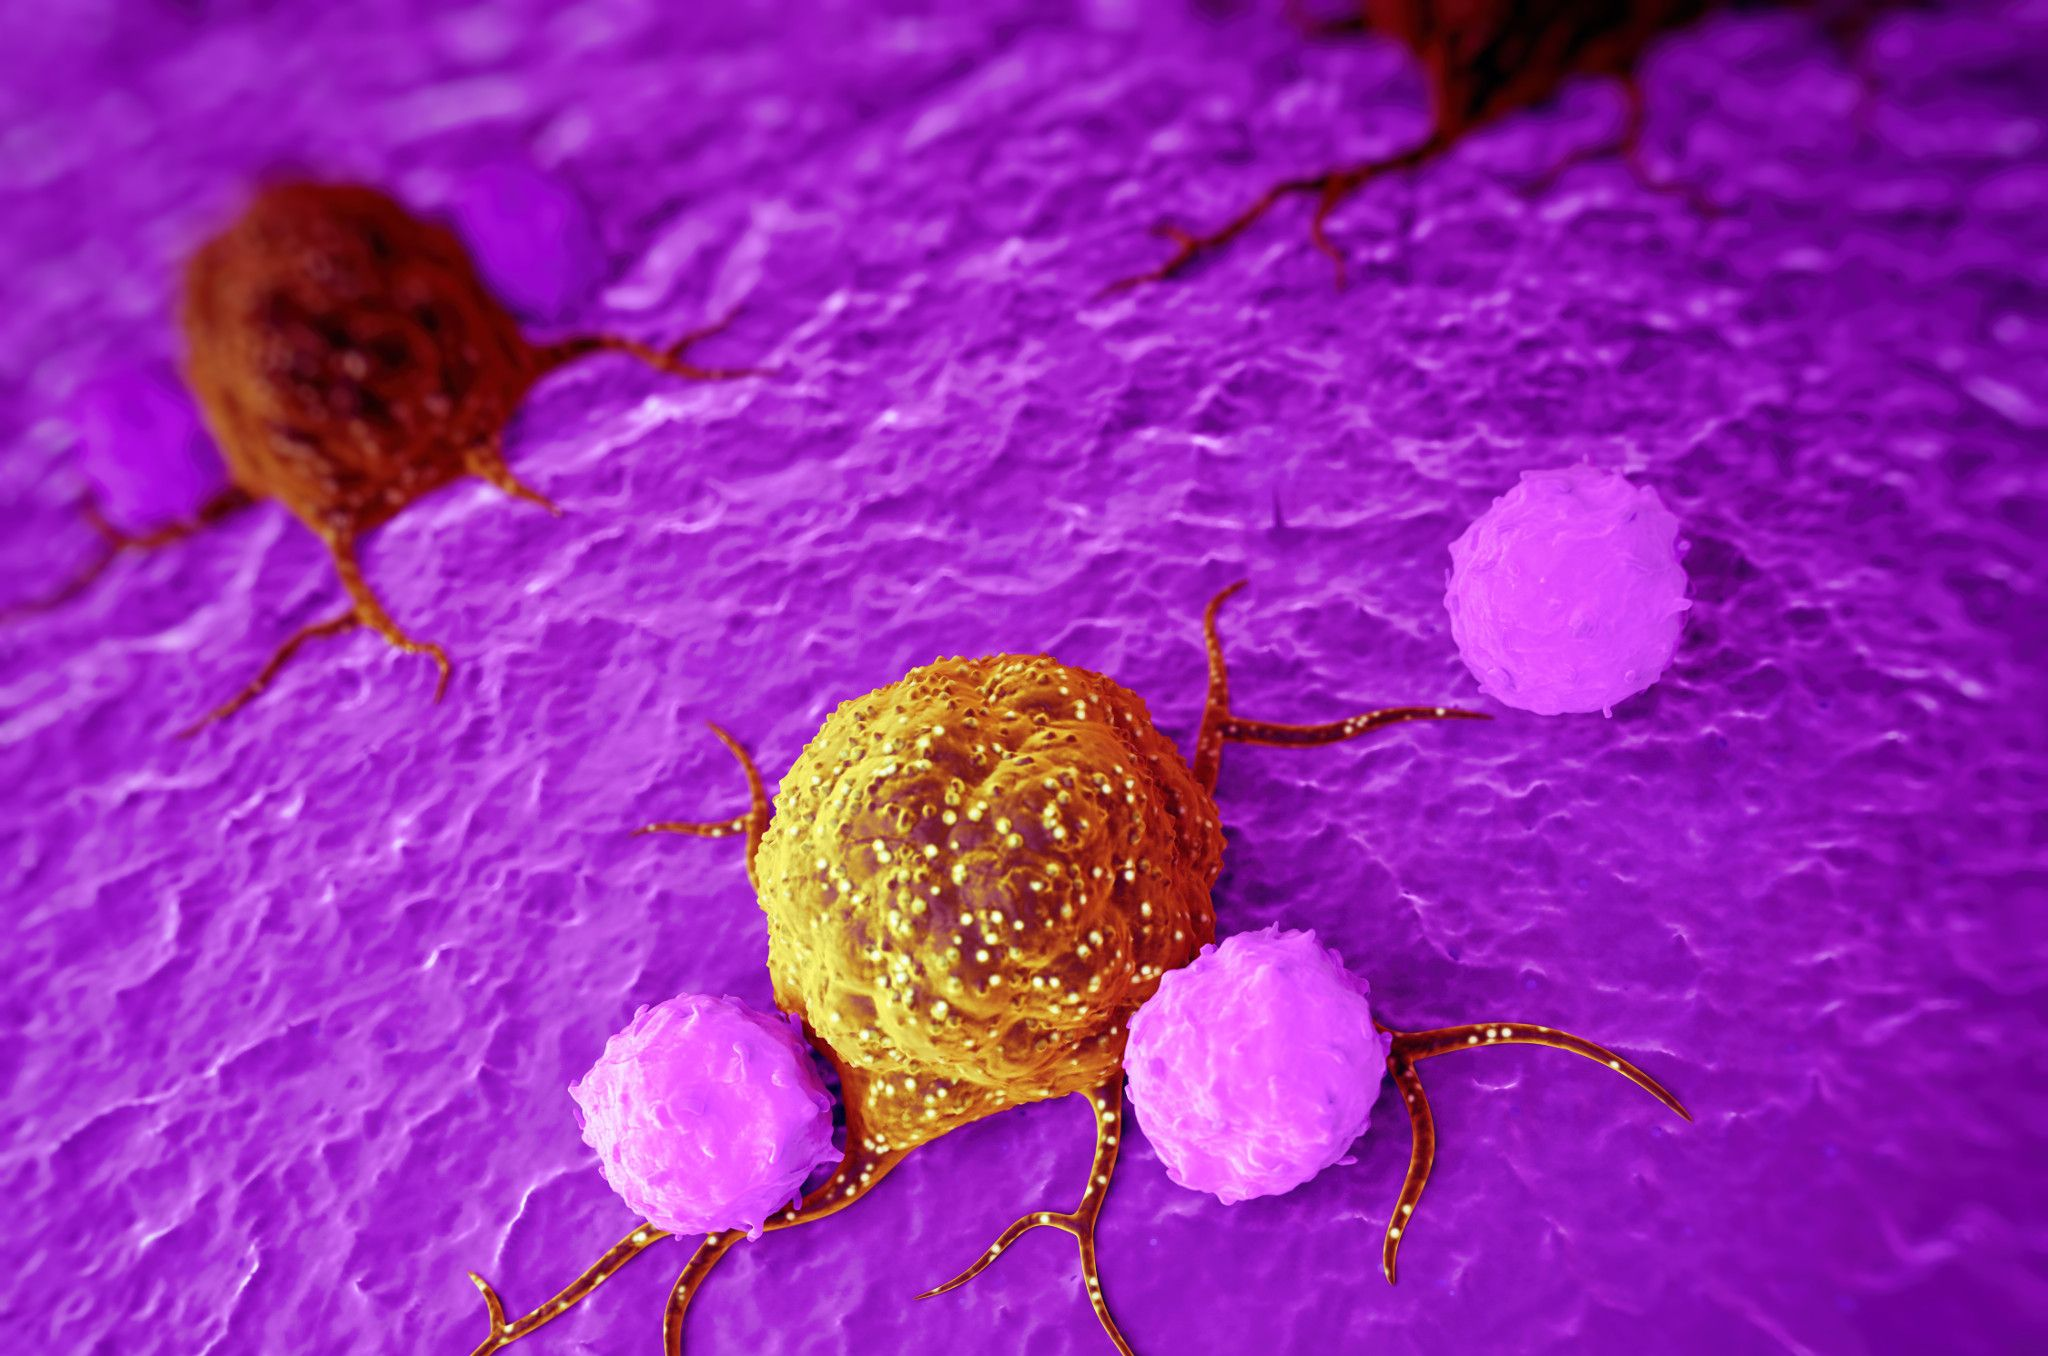 medically accurate 3d illustration of cancer cells